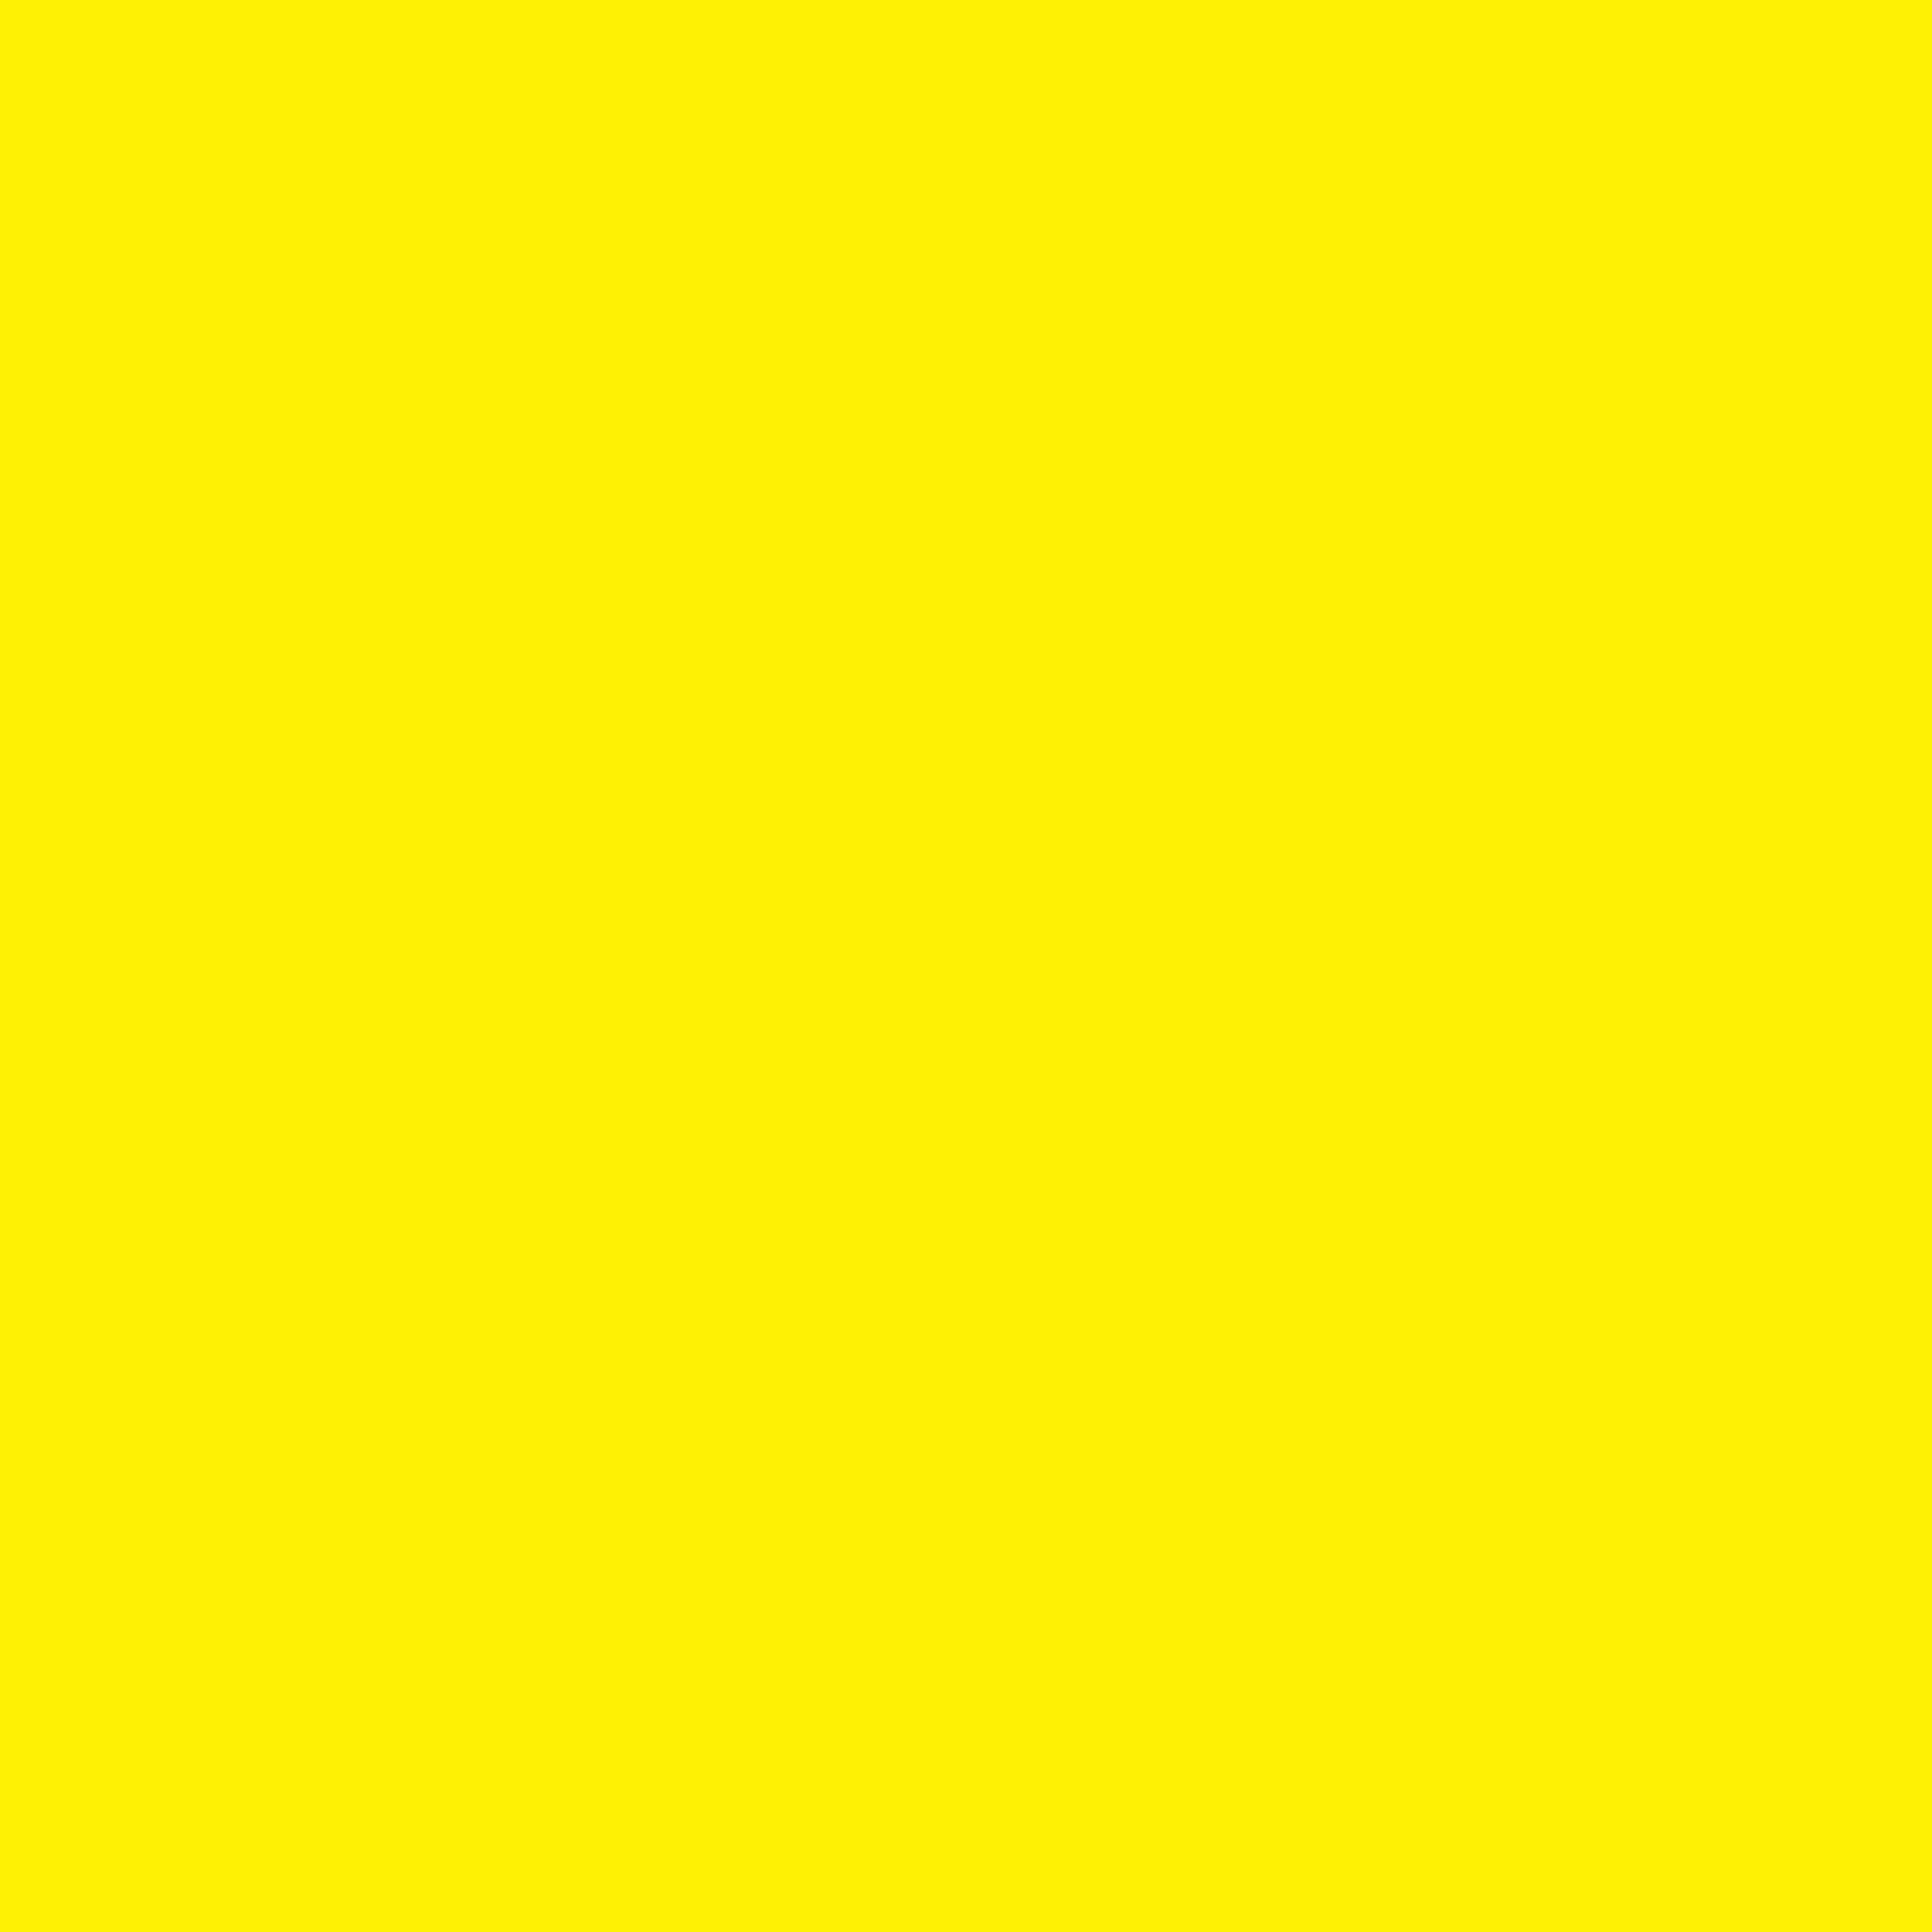 2048x2048 Canary Yellow Solid Color Background